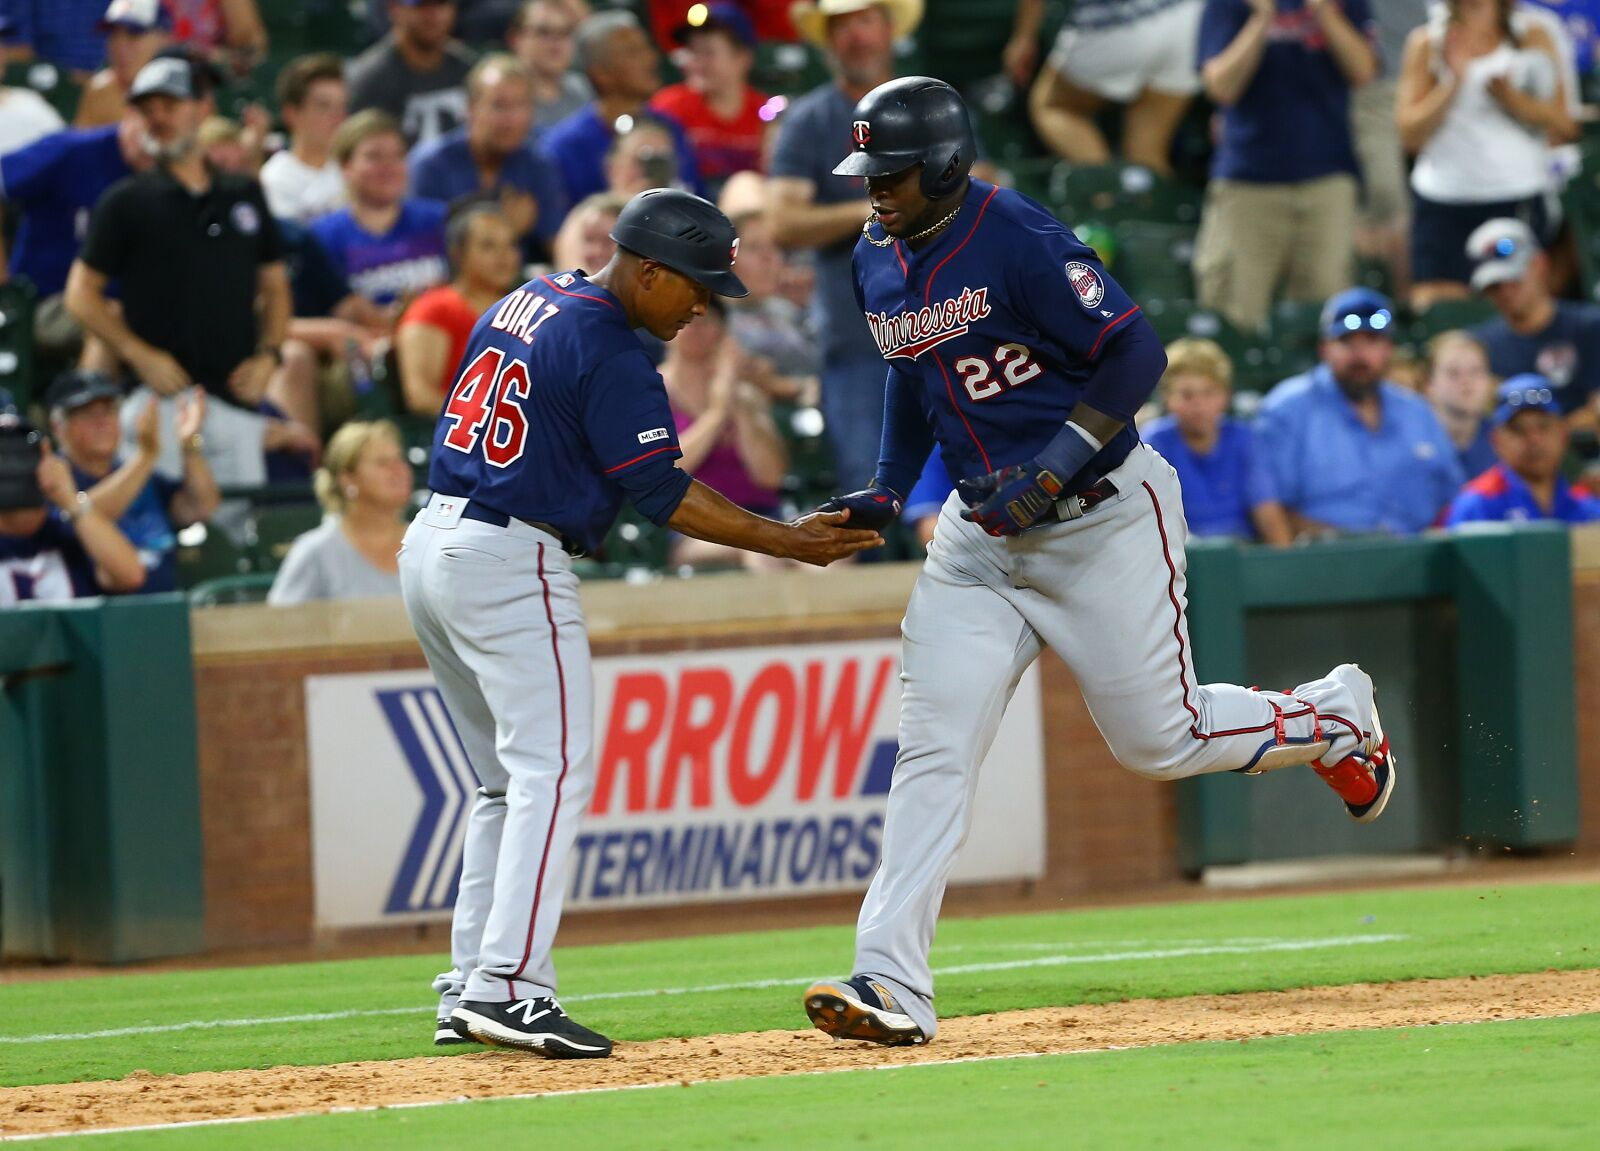 Twins schedule sets them up to leave Indians in their dust